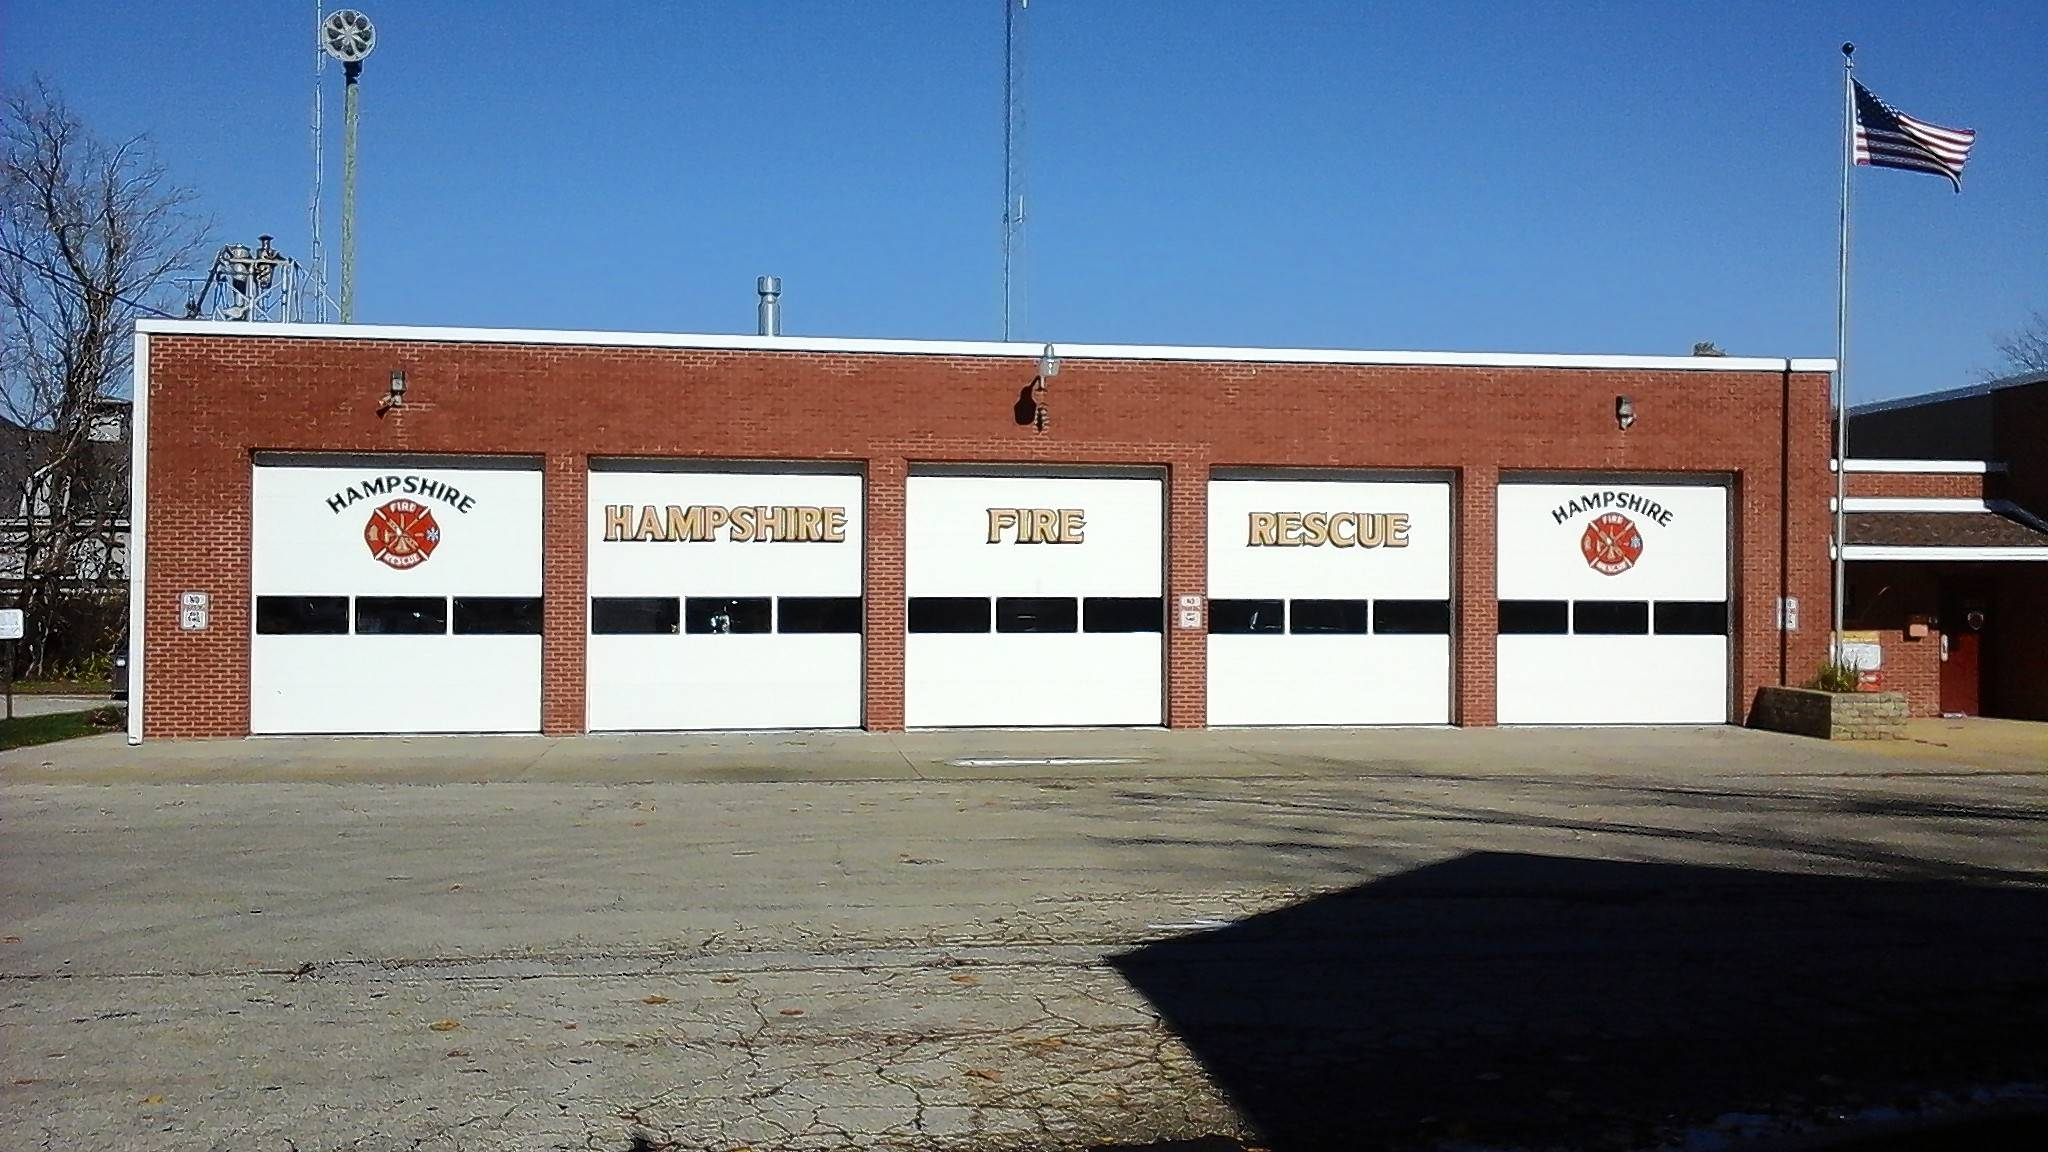 The Hampshire Fire Protection District is asking voters to approve a tax hike to increase staffing levels and replace equipment.